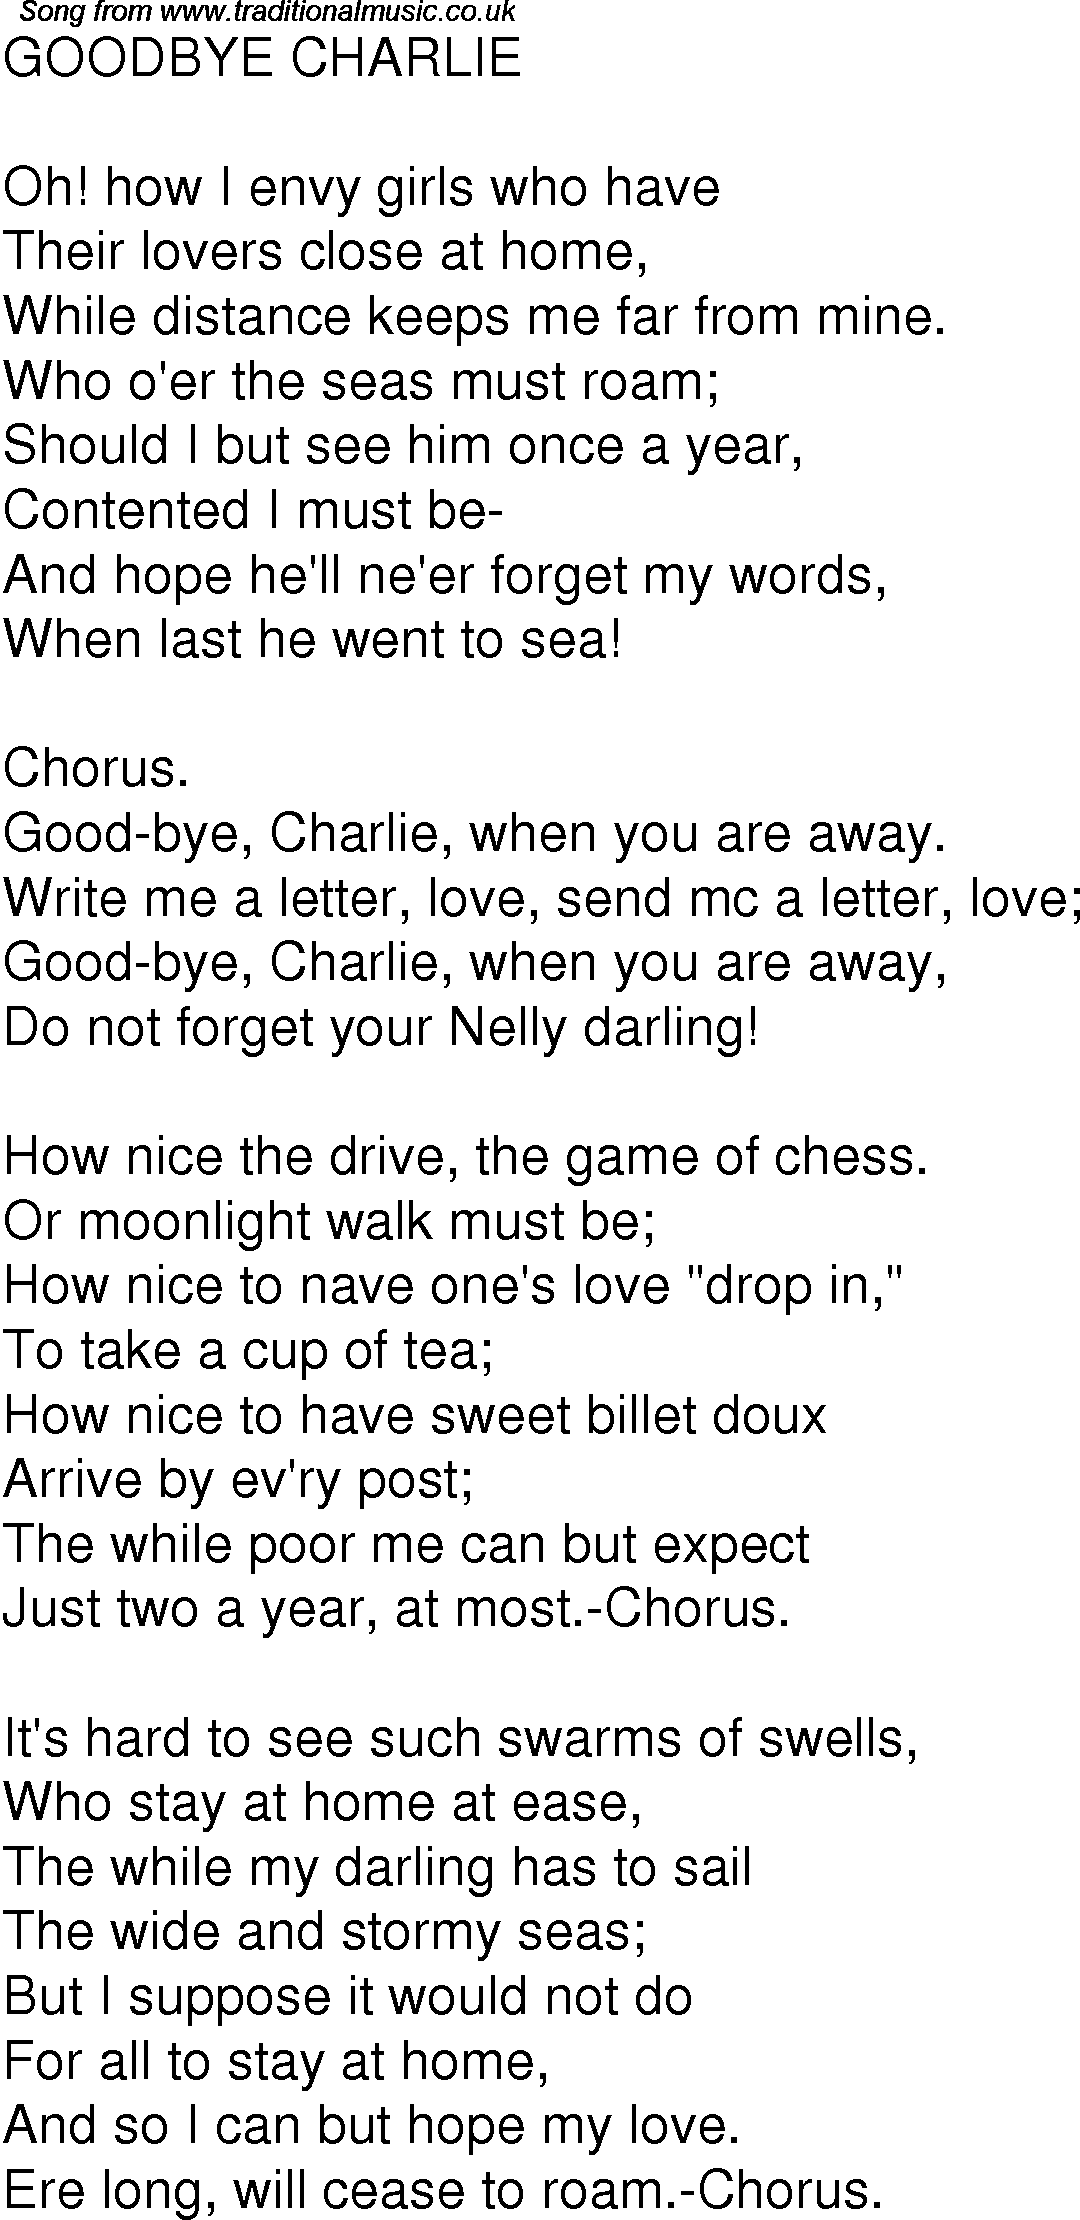 Old Time Song Lyrics for 02 Goodbye Charlie